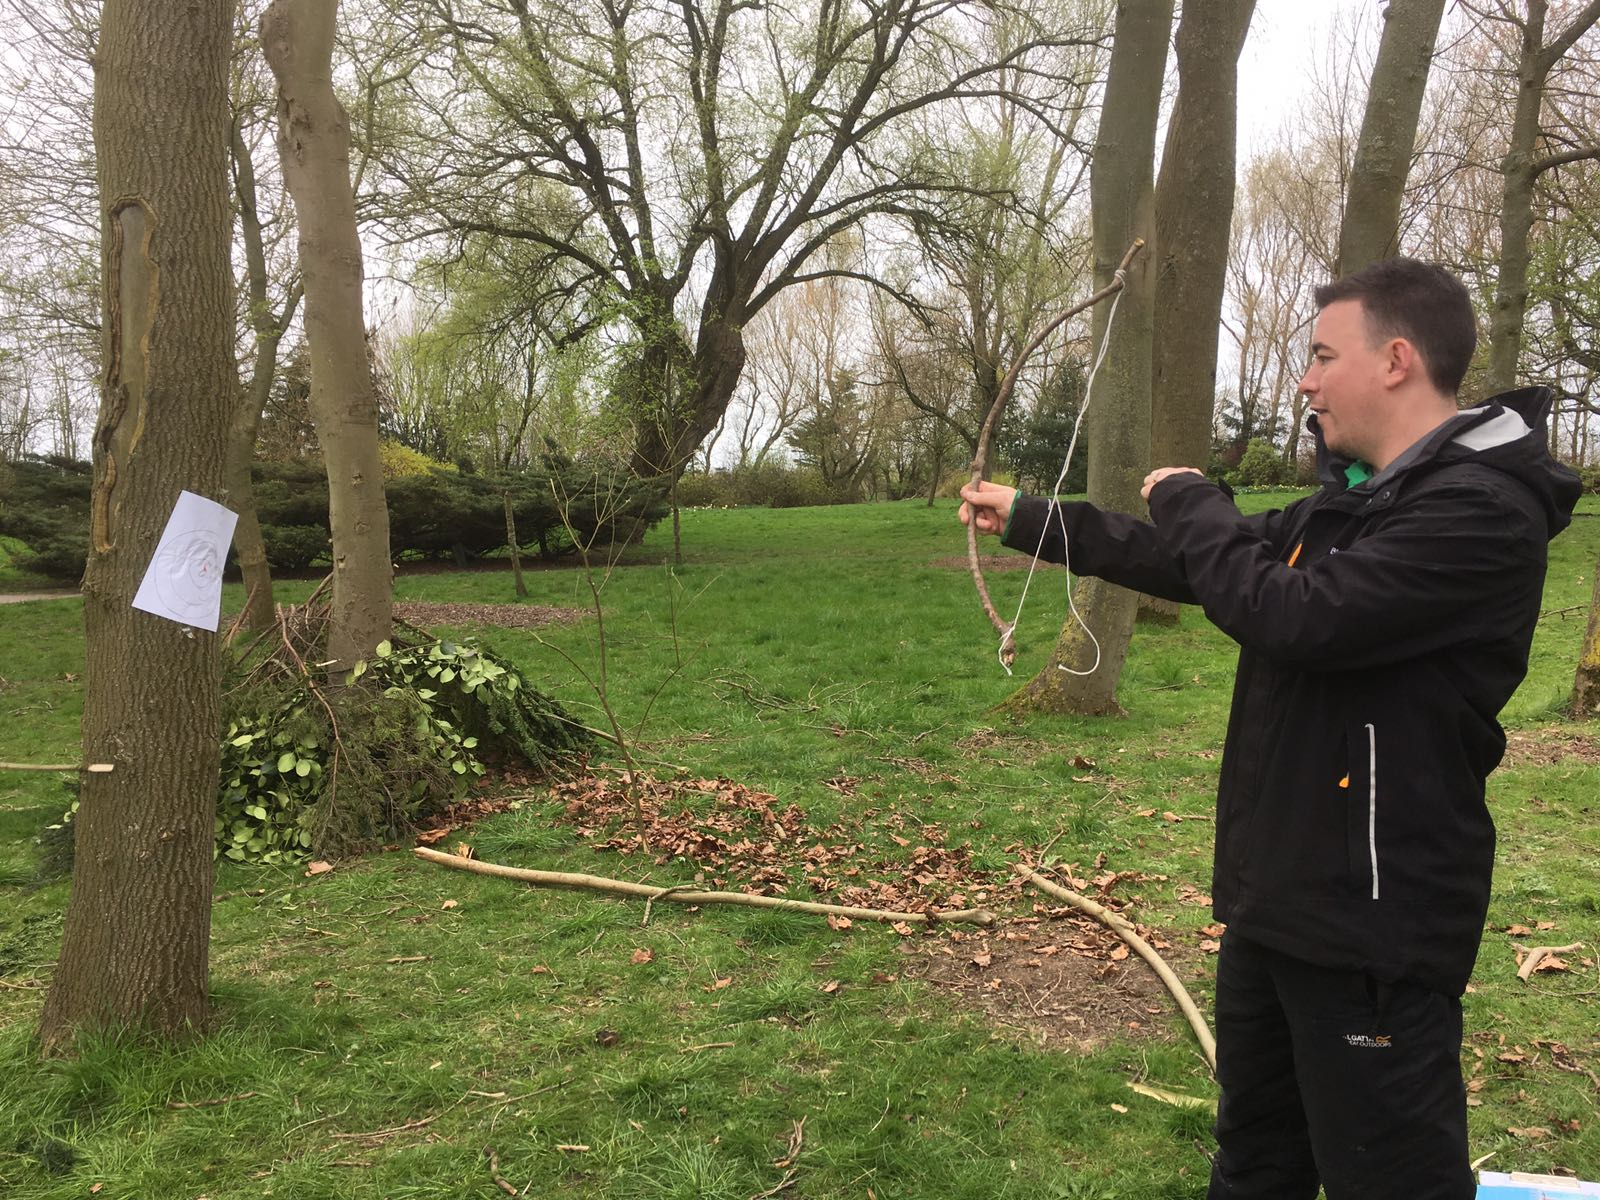 Man shooting a bow made of sticks and a string